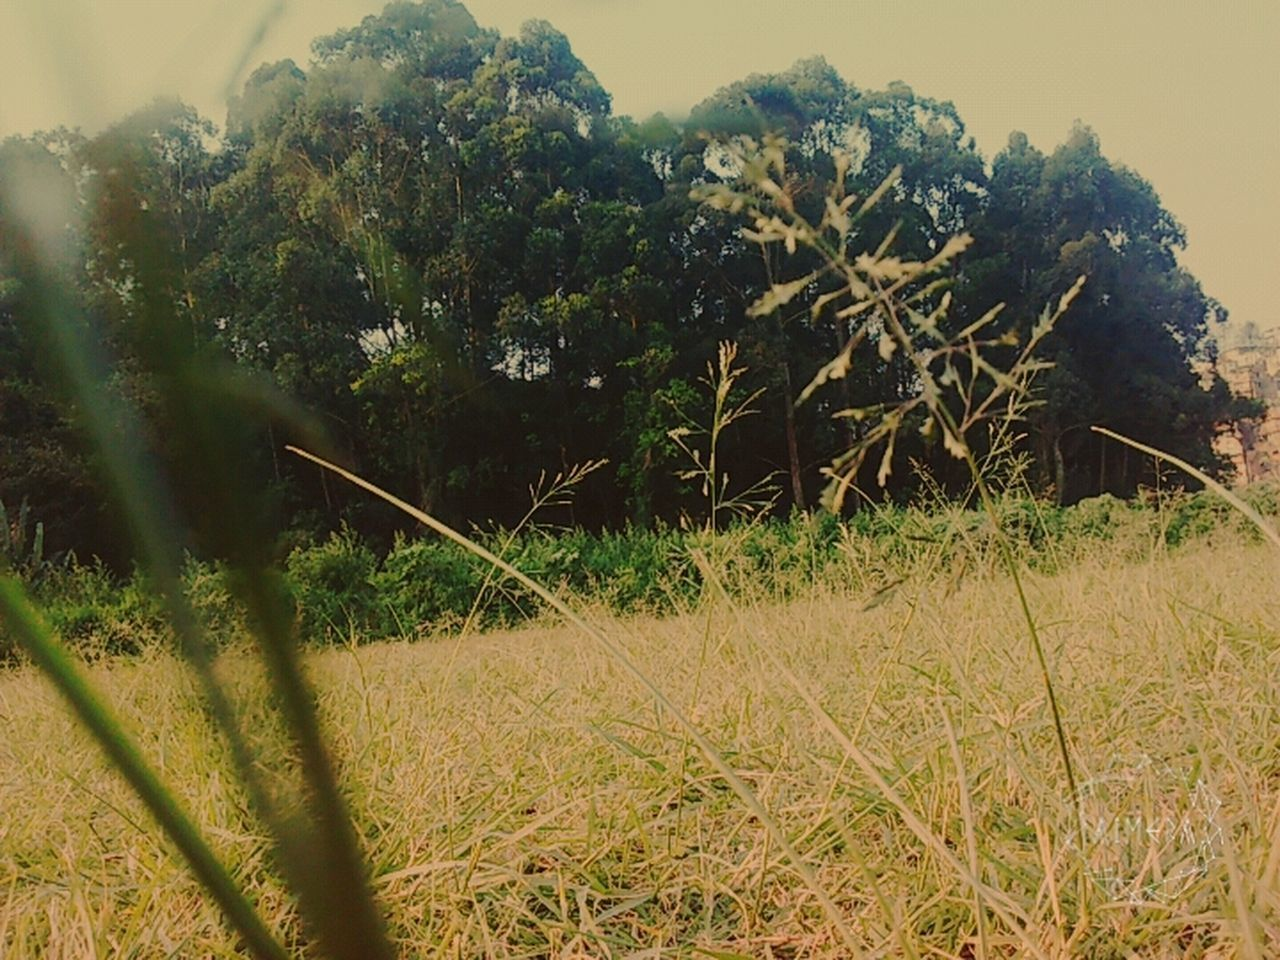 growth, nature, no people, day, field, tree, tranquility, outdoors, plant, beauty in nature, grass, landscape, scenics, sky, close-up